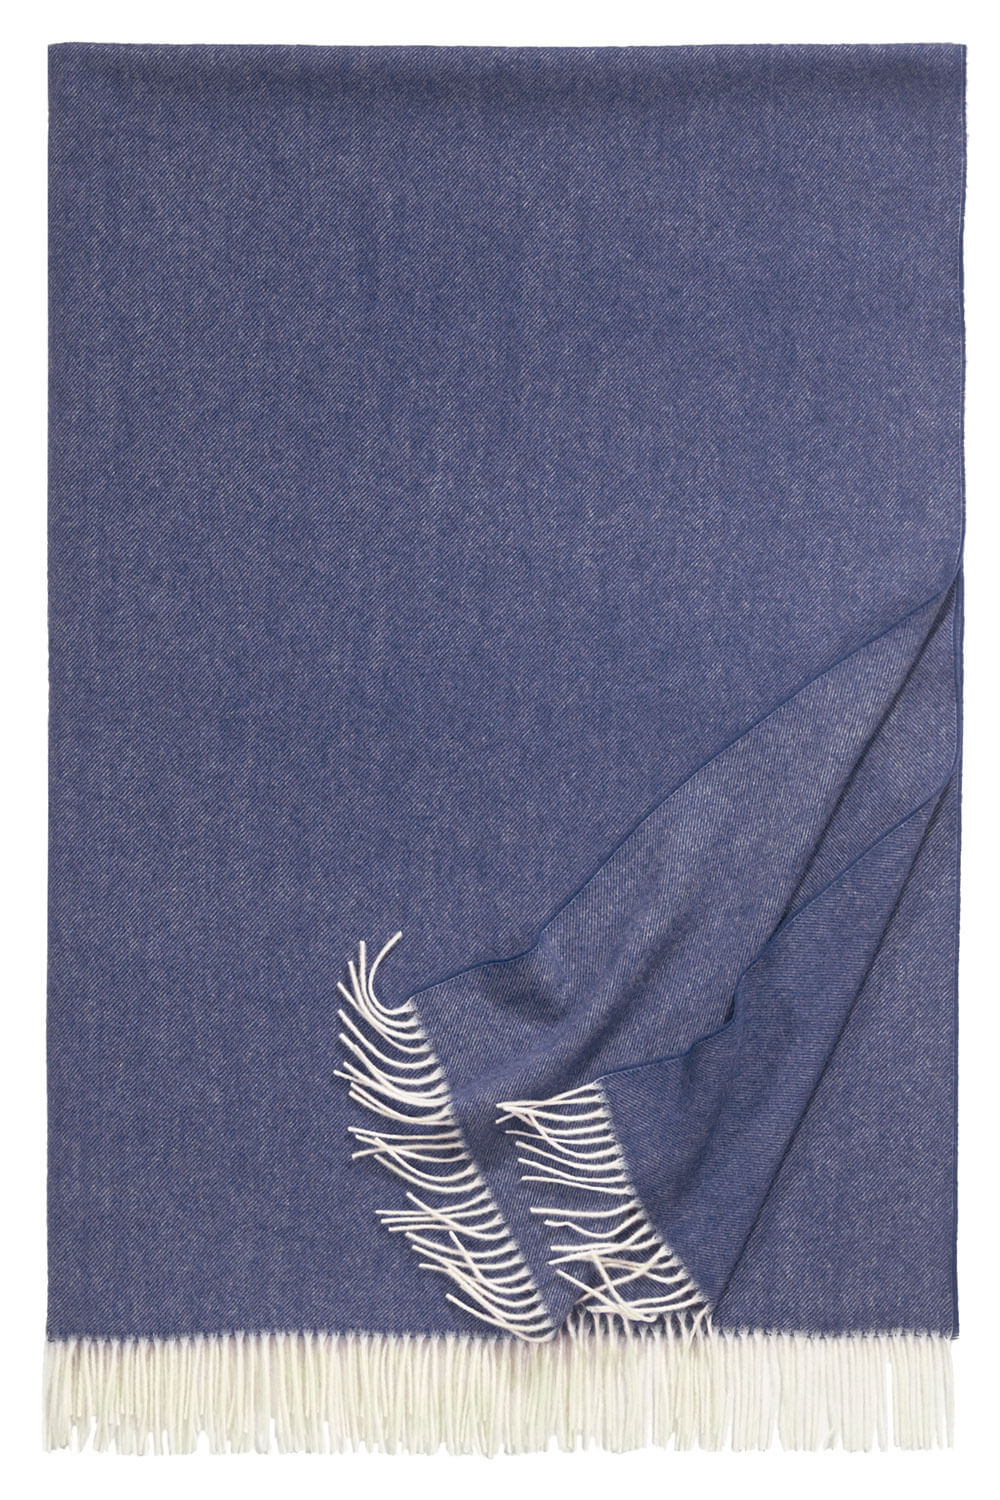 Bild von Boston_navy_blanket_wolle_soft_170, Variante denim